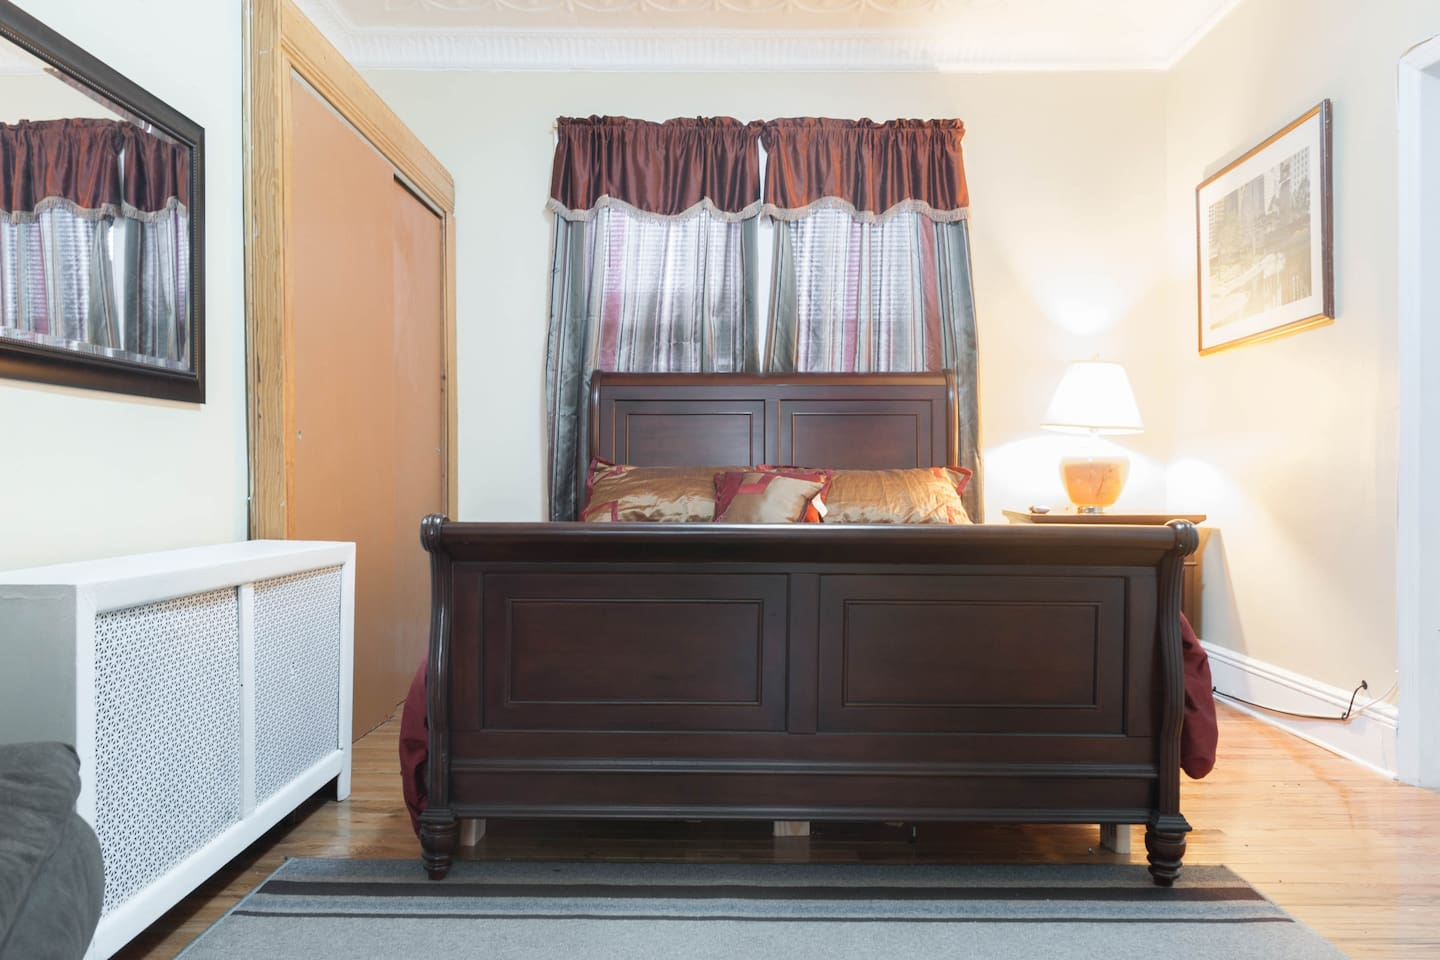 One of the bedrooms with a real and comfortable queen size bed.